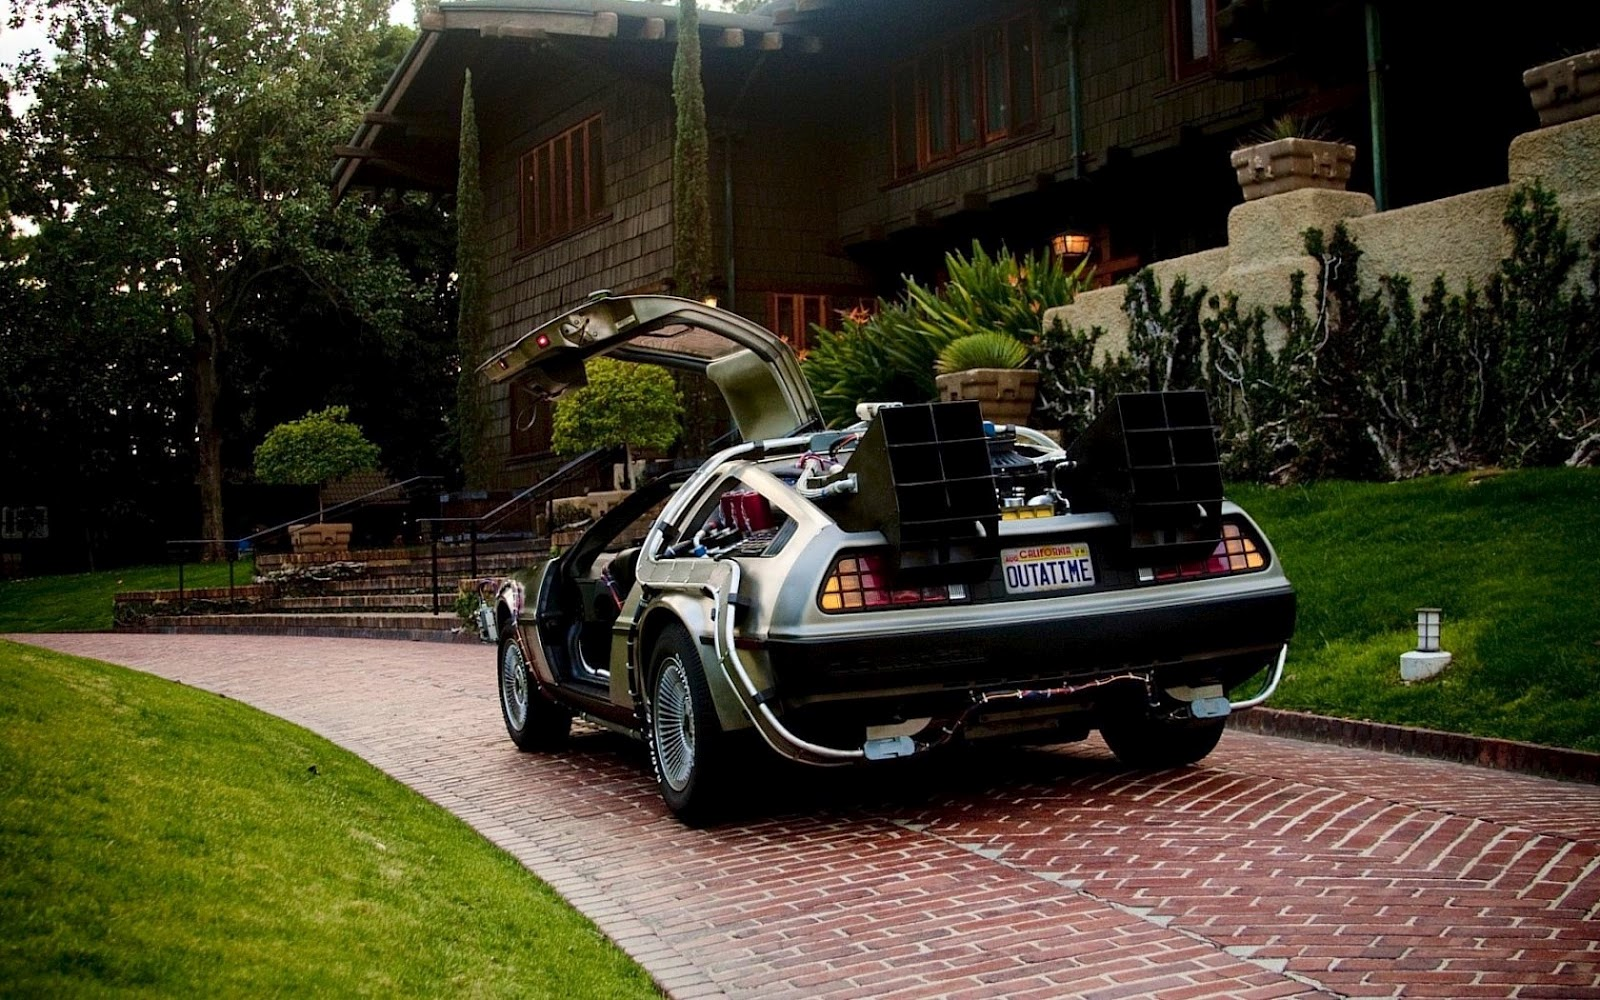 http://1.bp.blogspot.com/-qJTyfGo7sMY/T3sdr5jXTfI/AAAAAAAABFc/_18rEIBiwog/s1600/DeLorean_DMC_12_Back_to_the_Future_Car_HD_Wallpaper.jpg